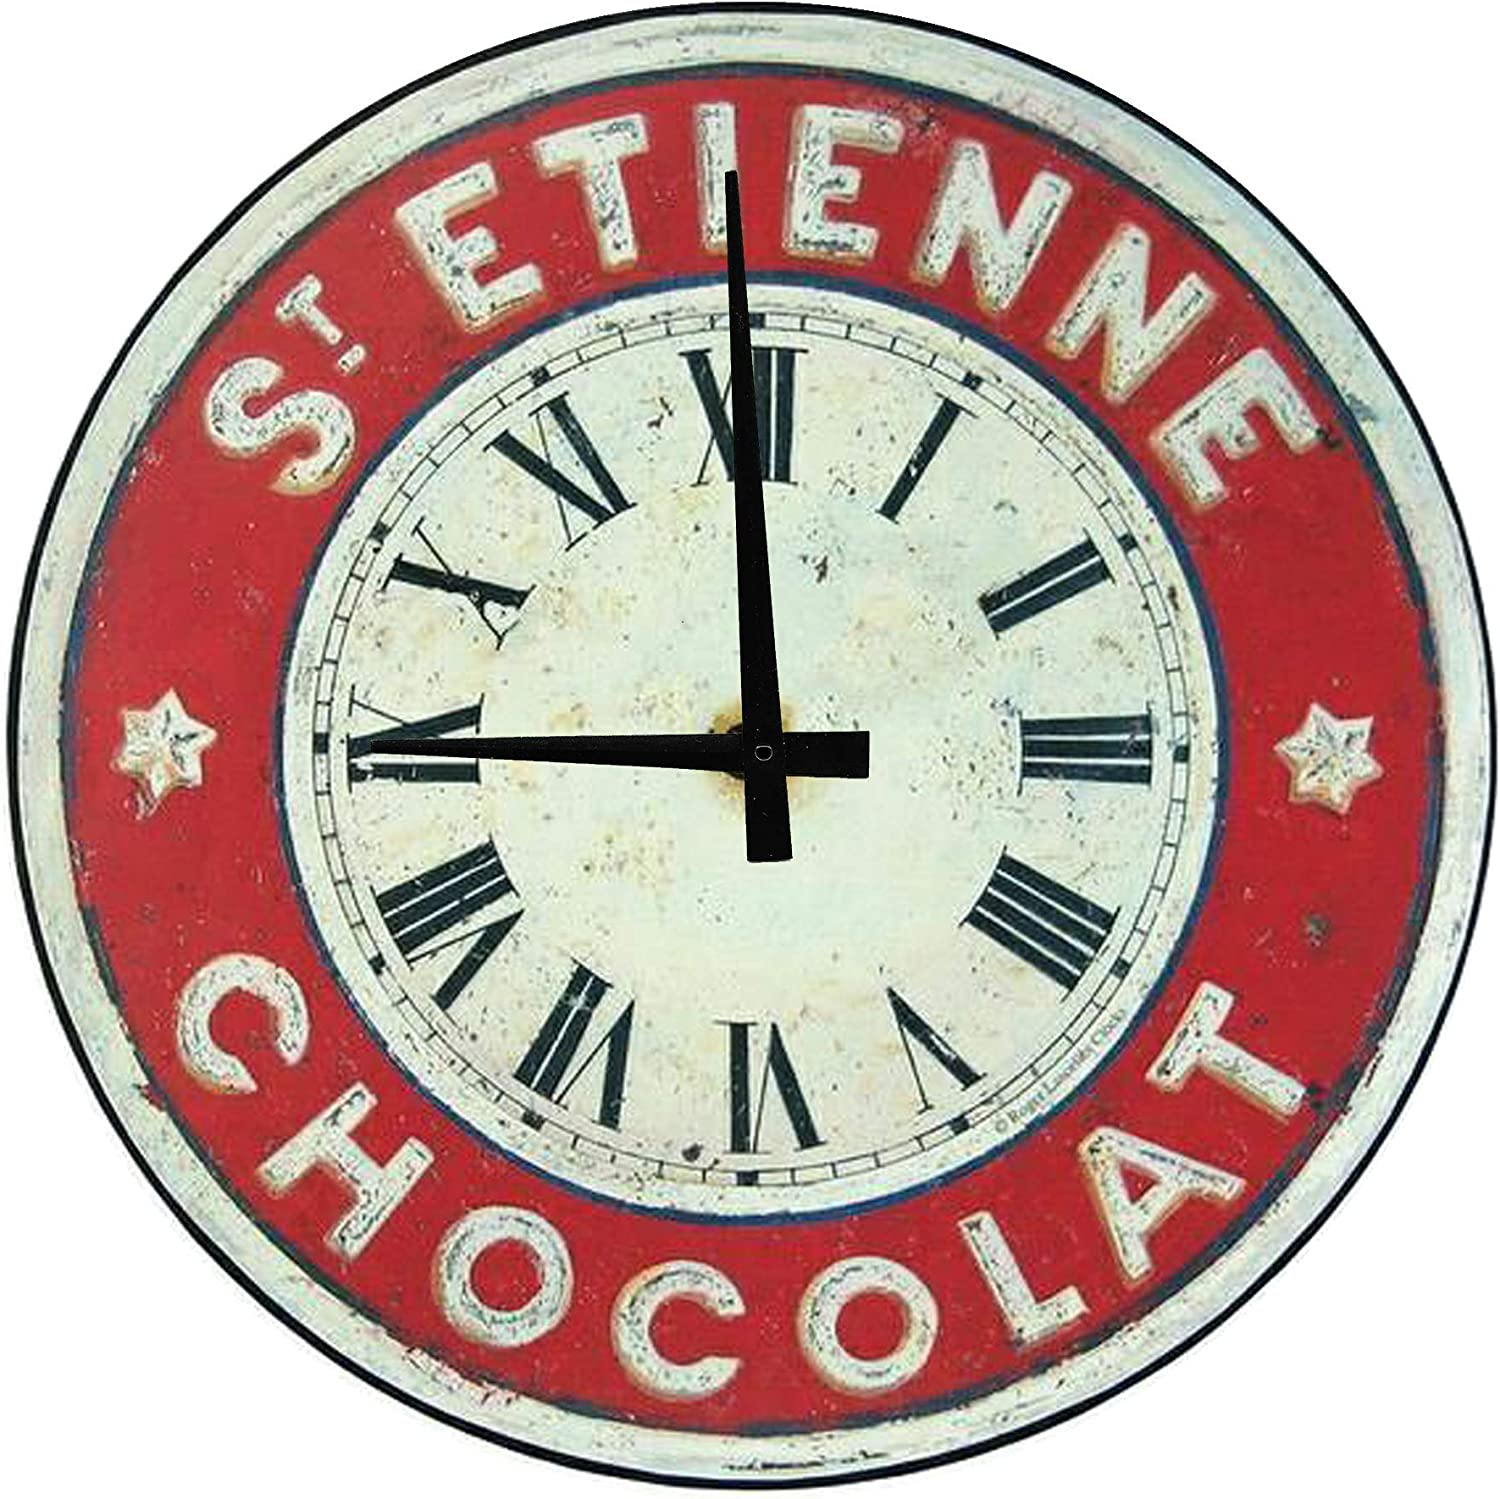 GBB Round Wood Wall Clock St Etienne Chocolate Red White Vintage Large Clock Wall Art 12 inch Home Decor